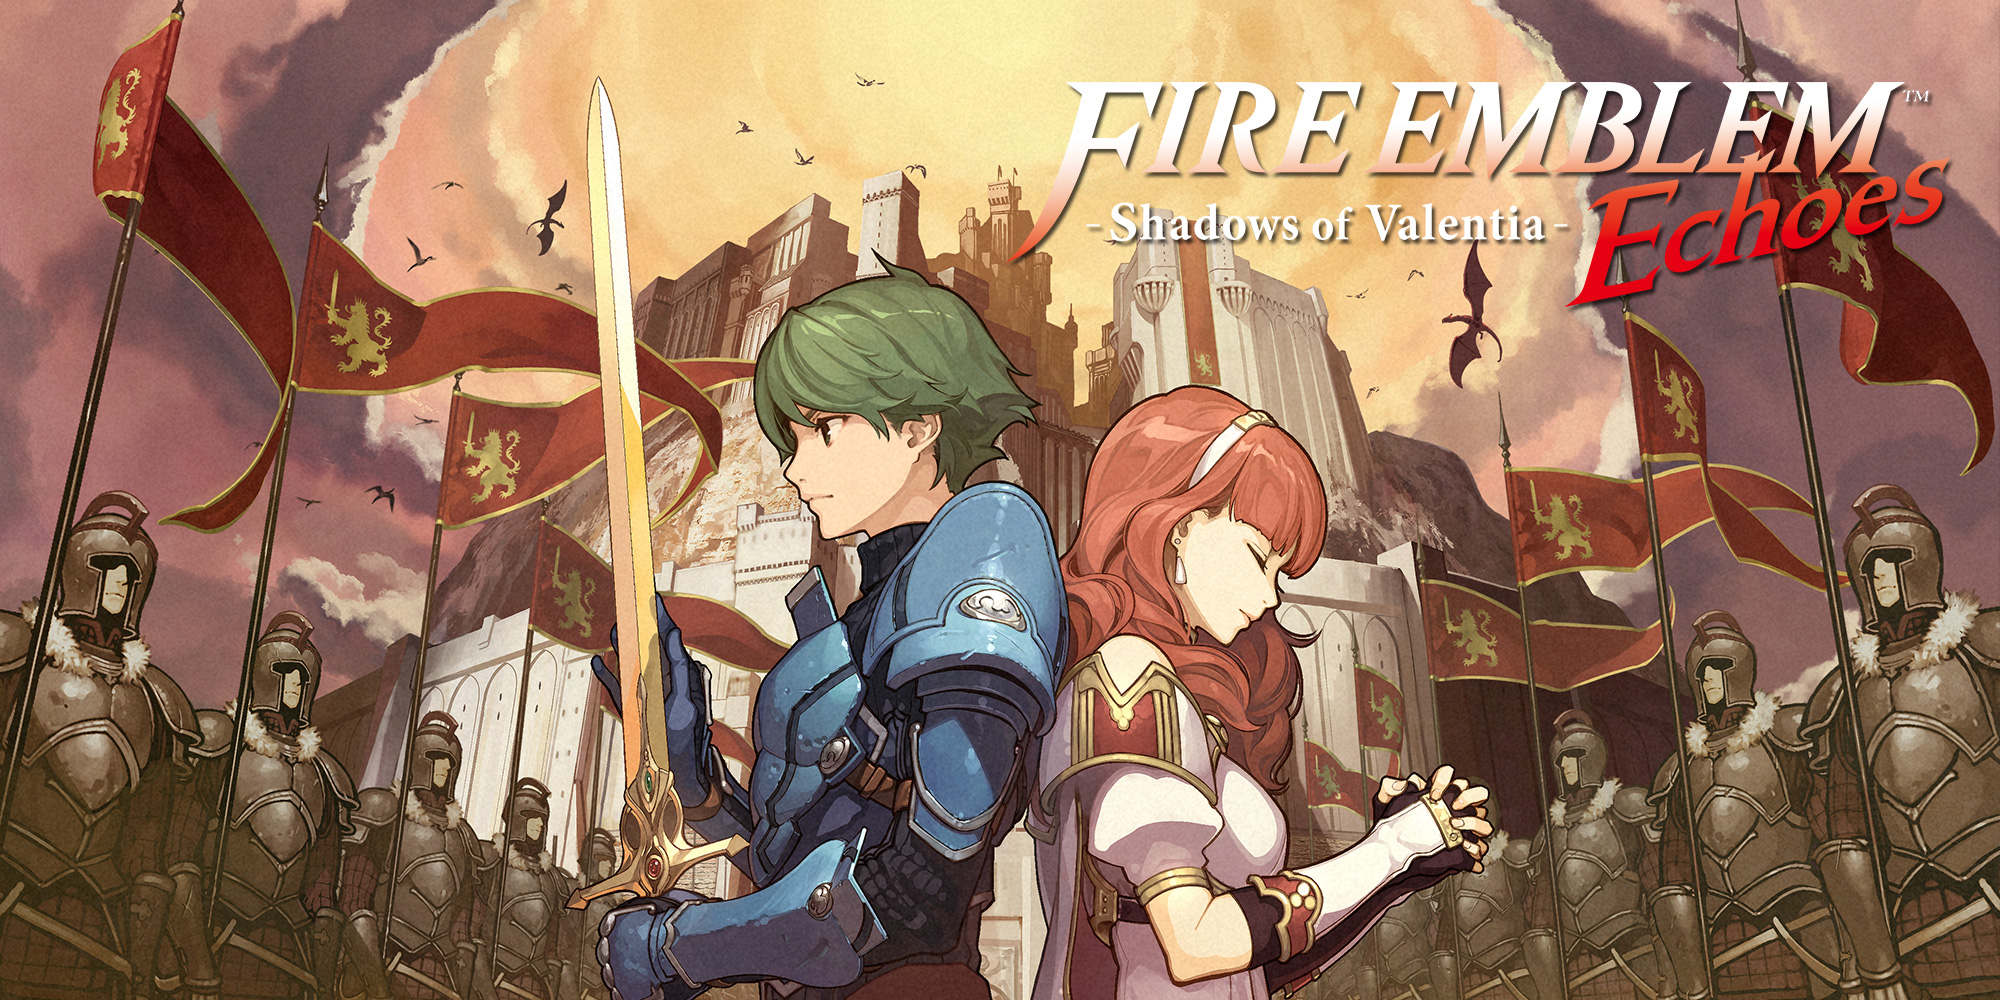 The fate of Valentia is in your hands in Fire Emblem Echoes: Shadows of Valentia, coming to Nintendo 3DS family systems on May 19th